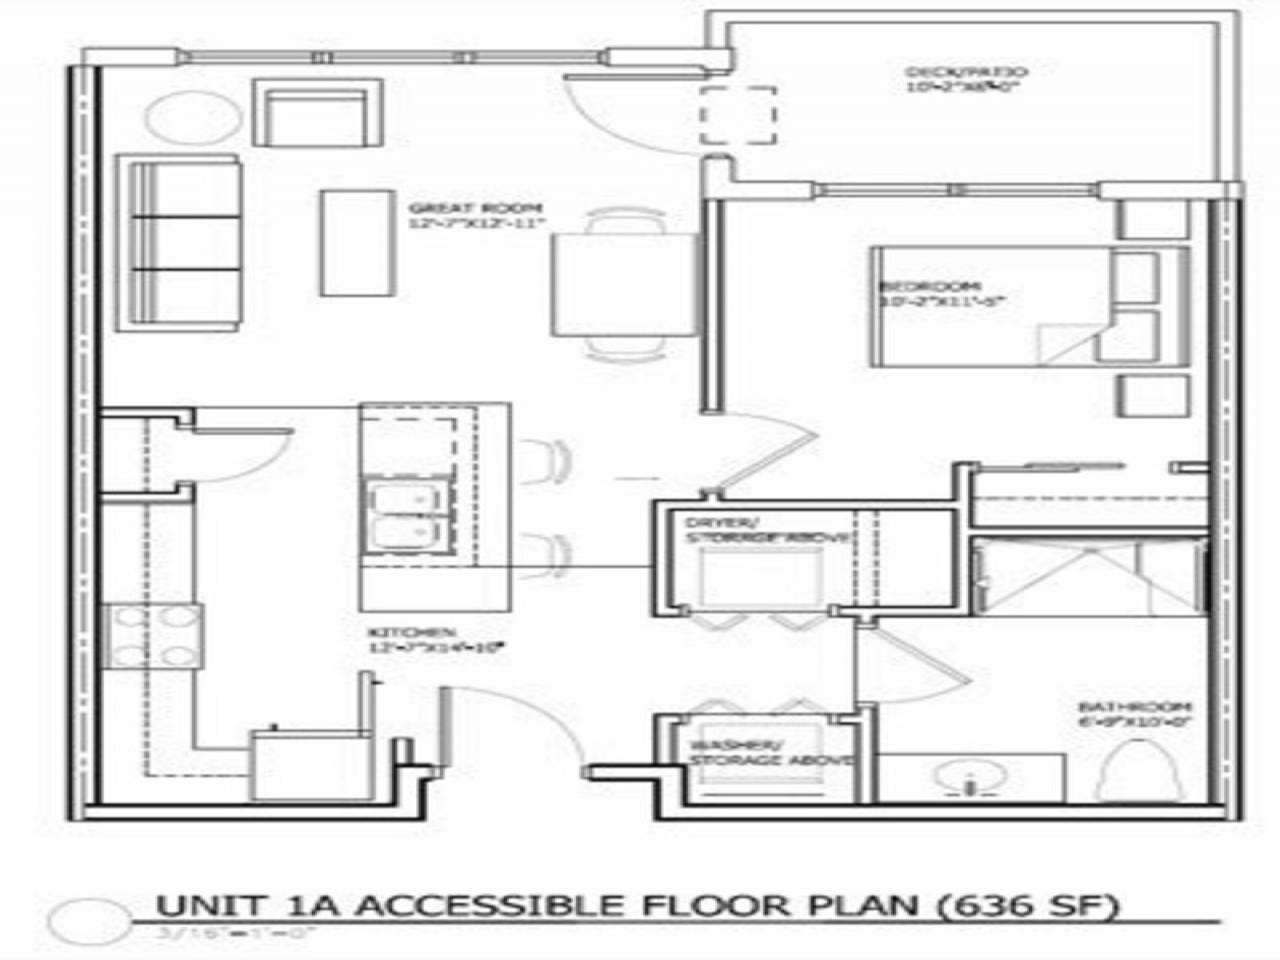 2 Bedroom Apartment Plans Small Apartment Floor Plan 2 Bedroom Apartment Floor Plan